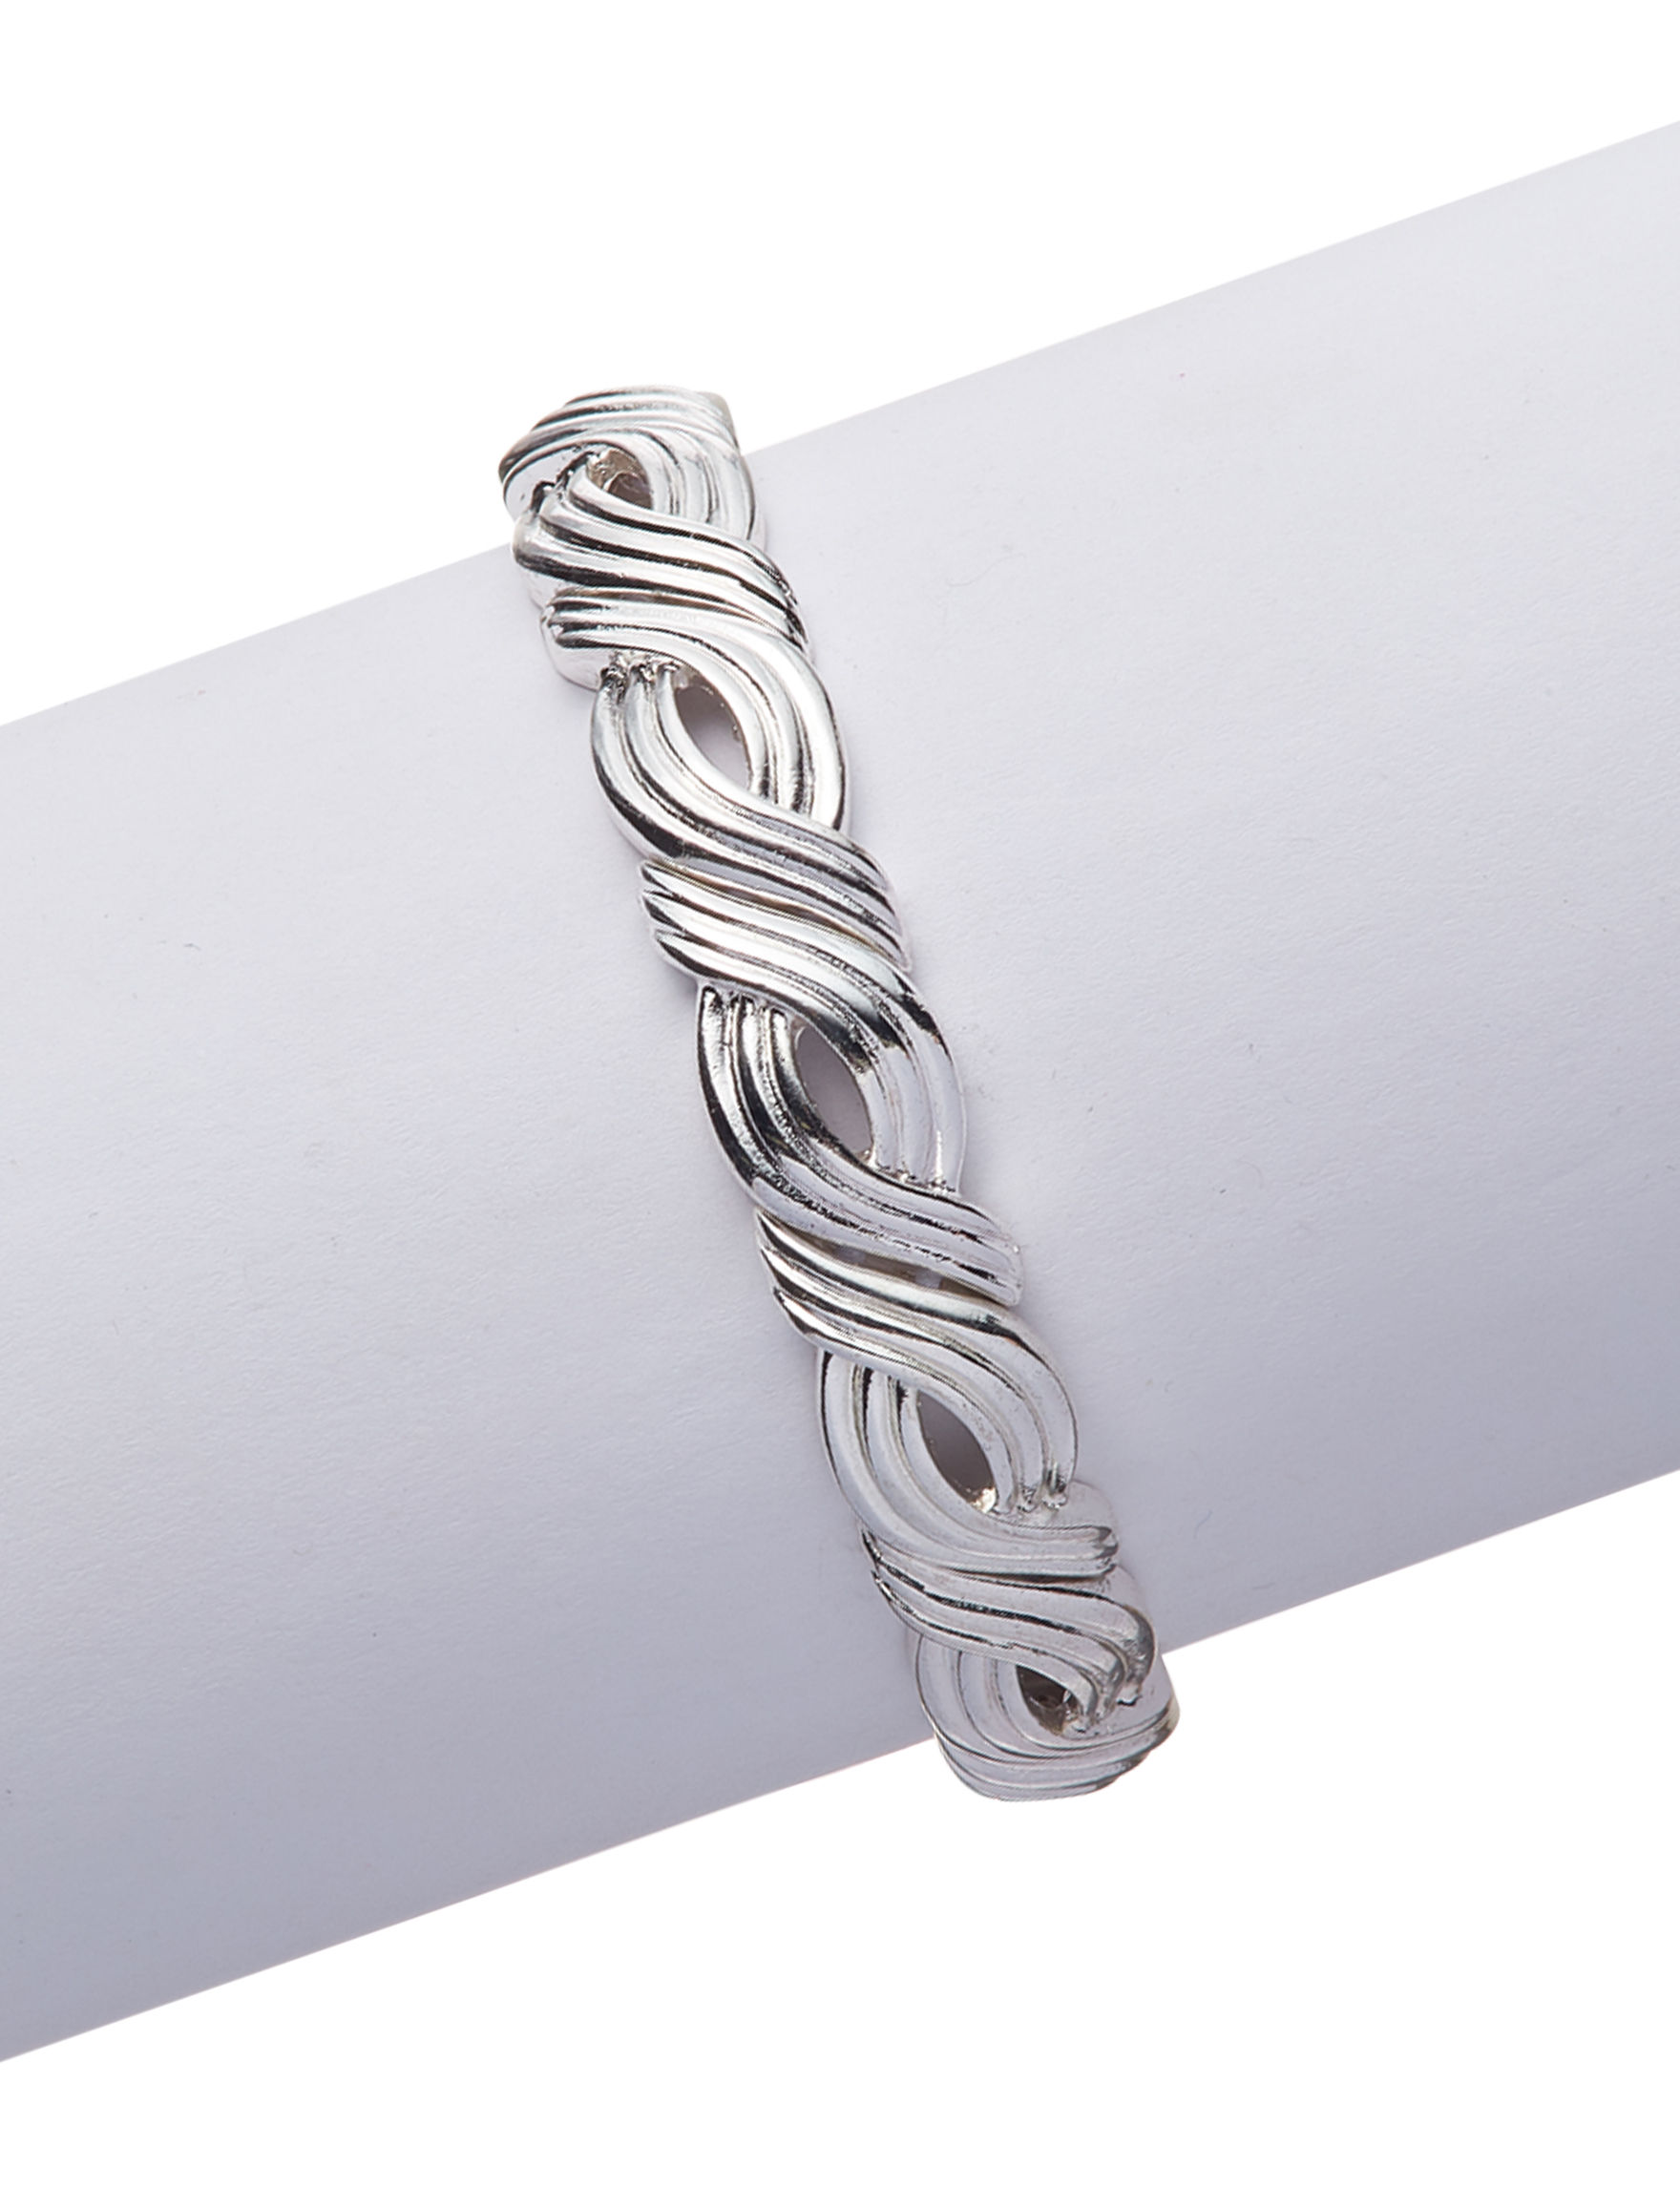 Napier Silver Bracelets Fashion Jewelry